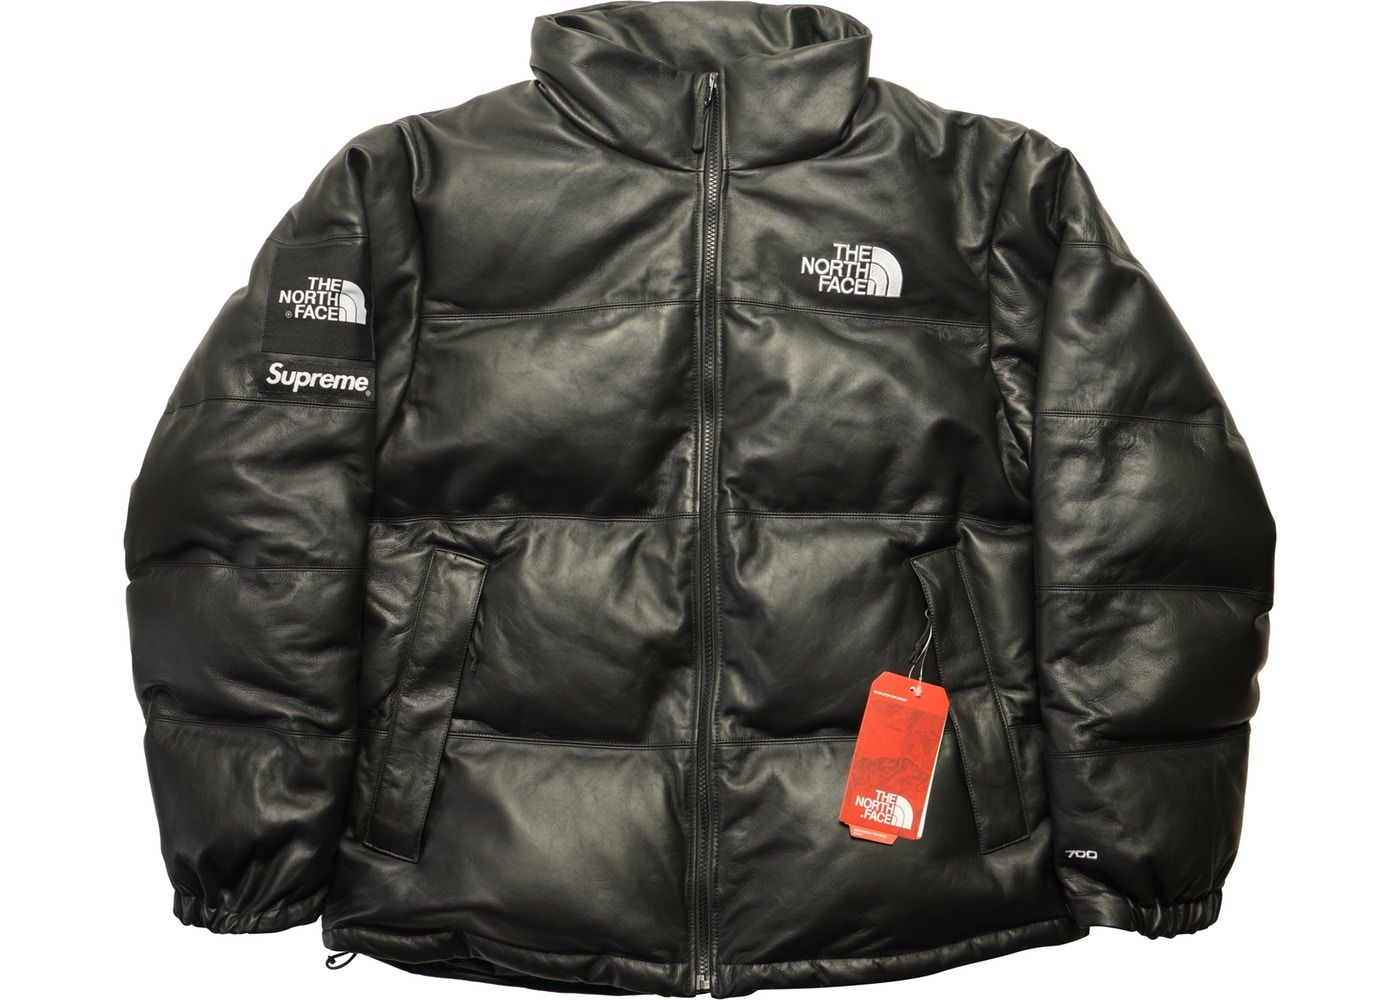 Supreme The North Face Leather Nuptse Jacket Black The North Face Jackets Black Jacket